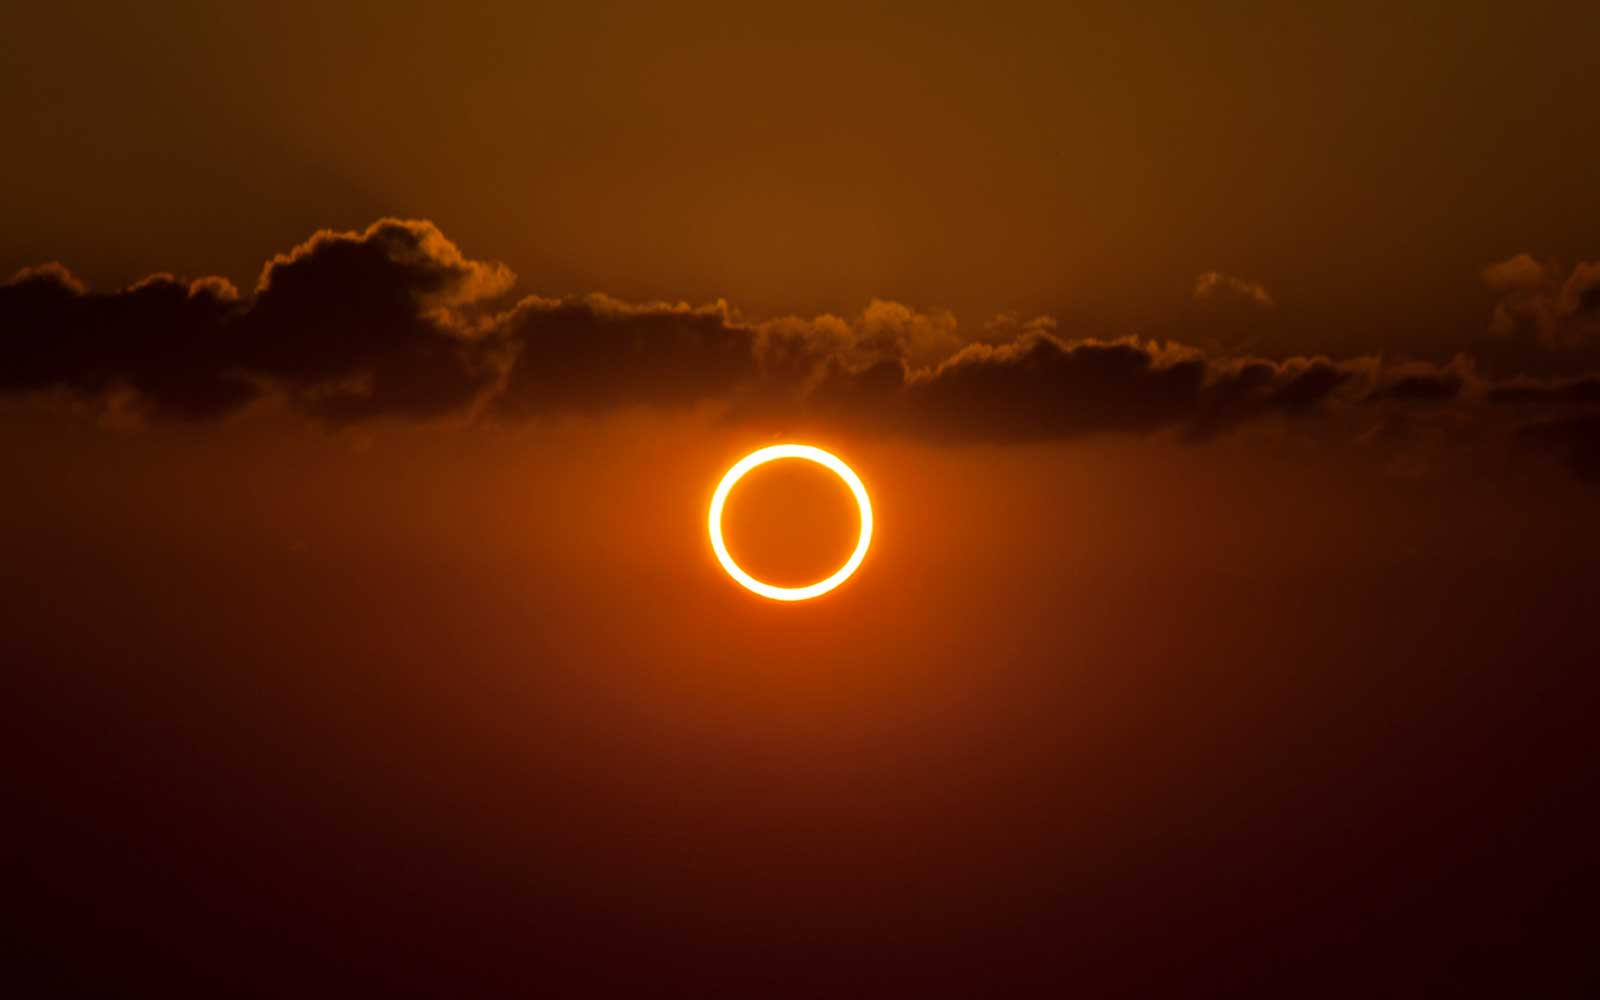 Totality during annular solar eclipse with ring of fire.